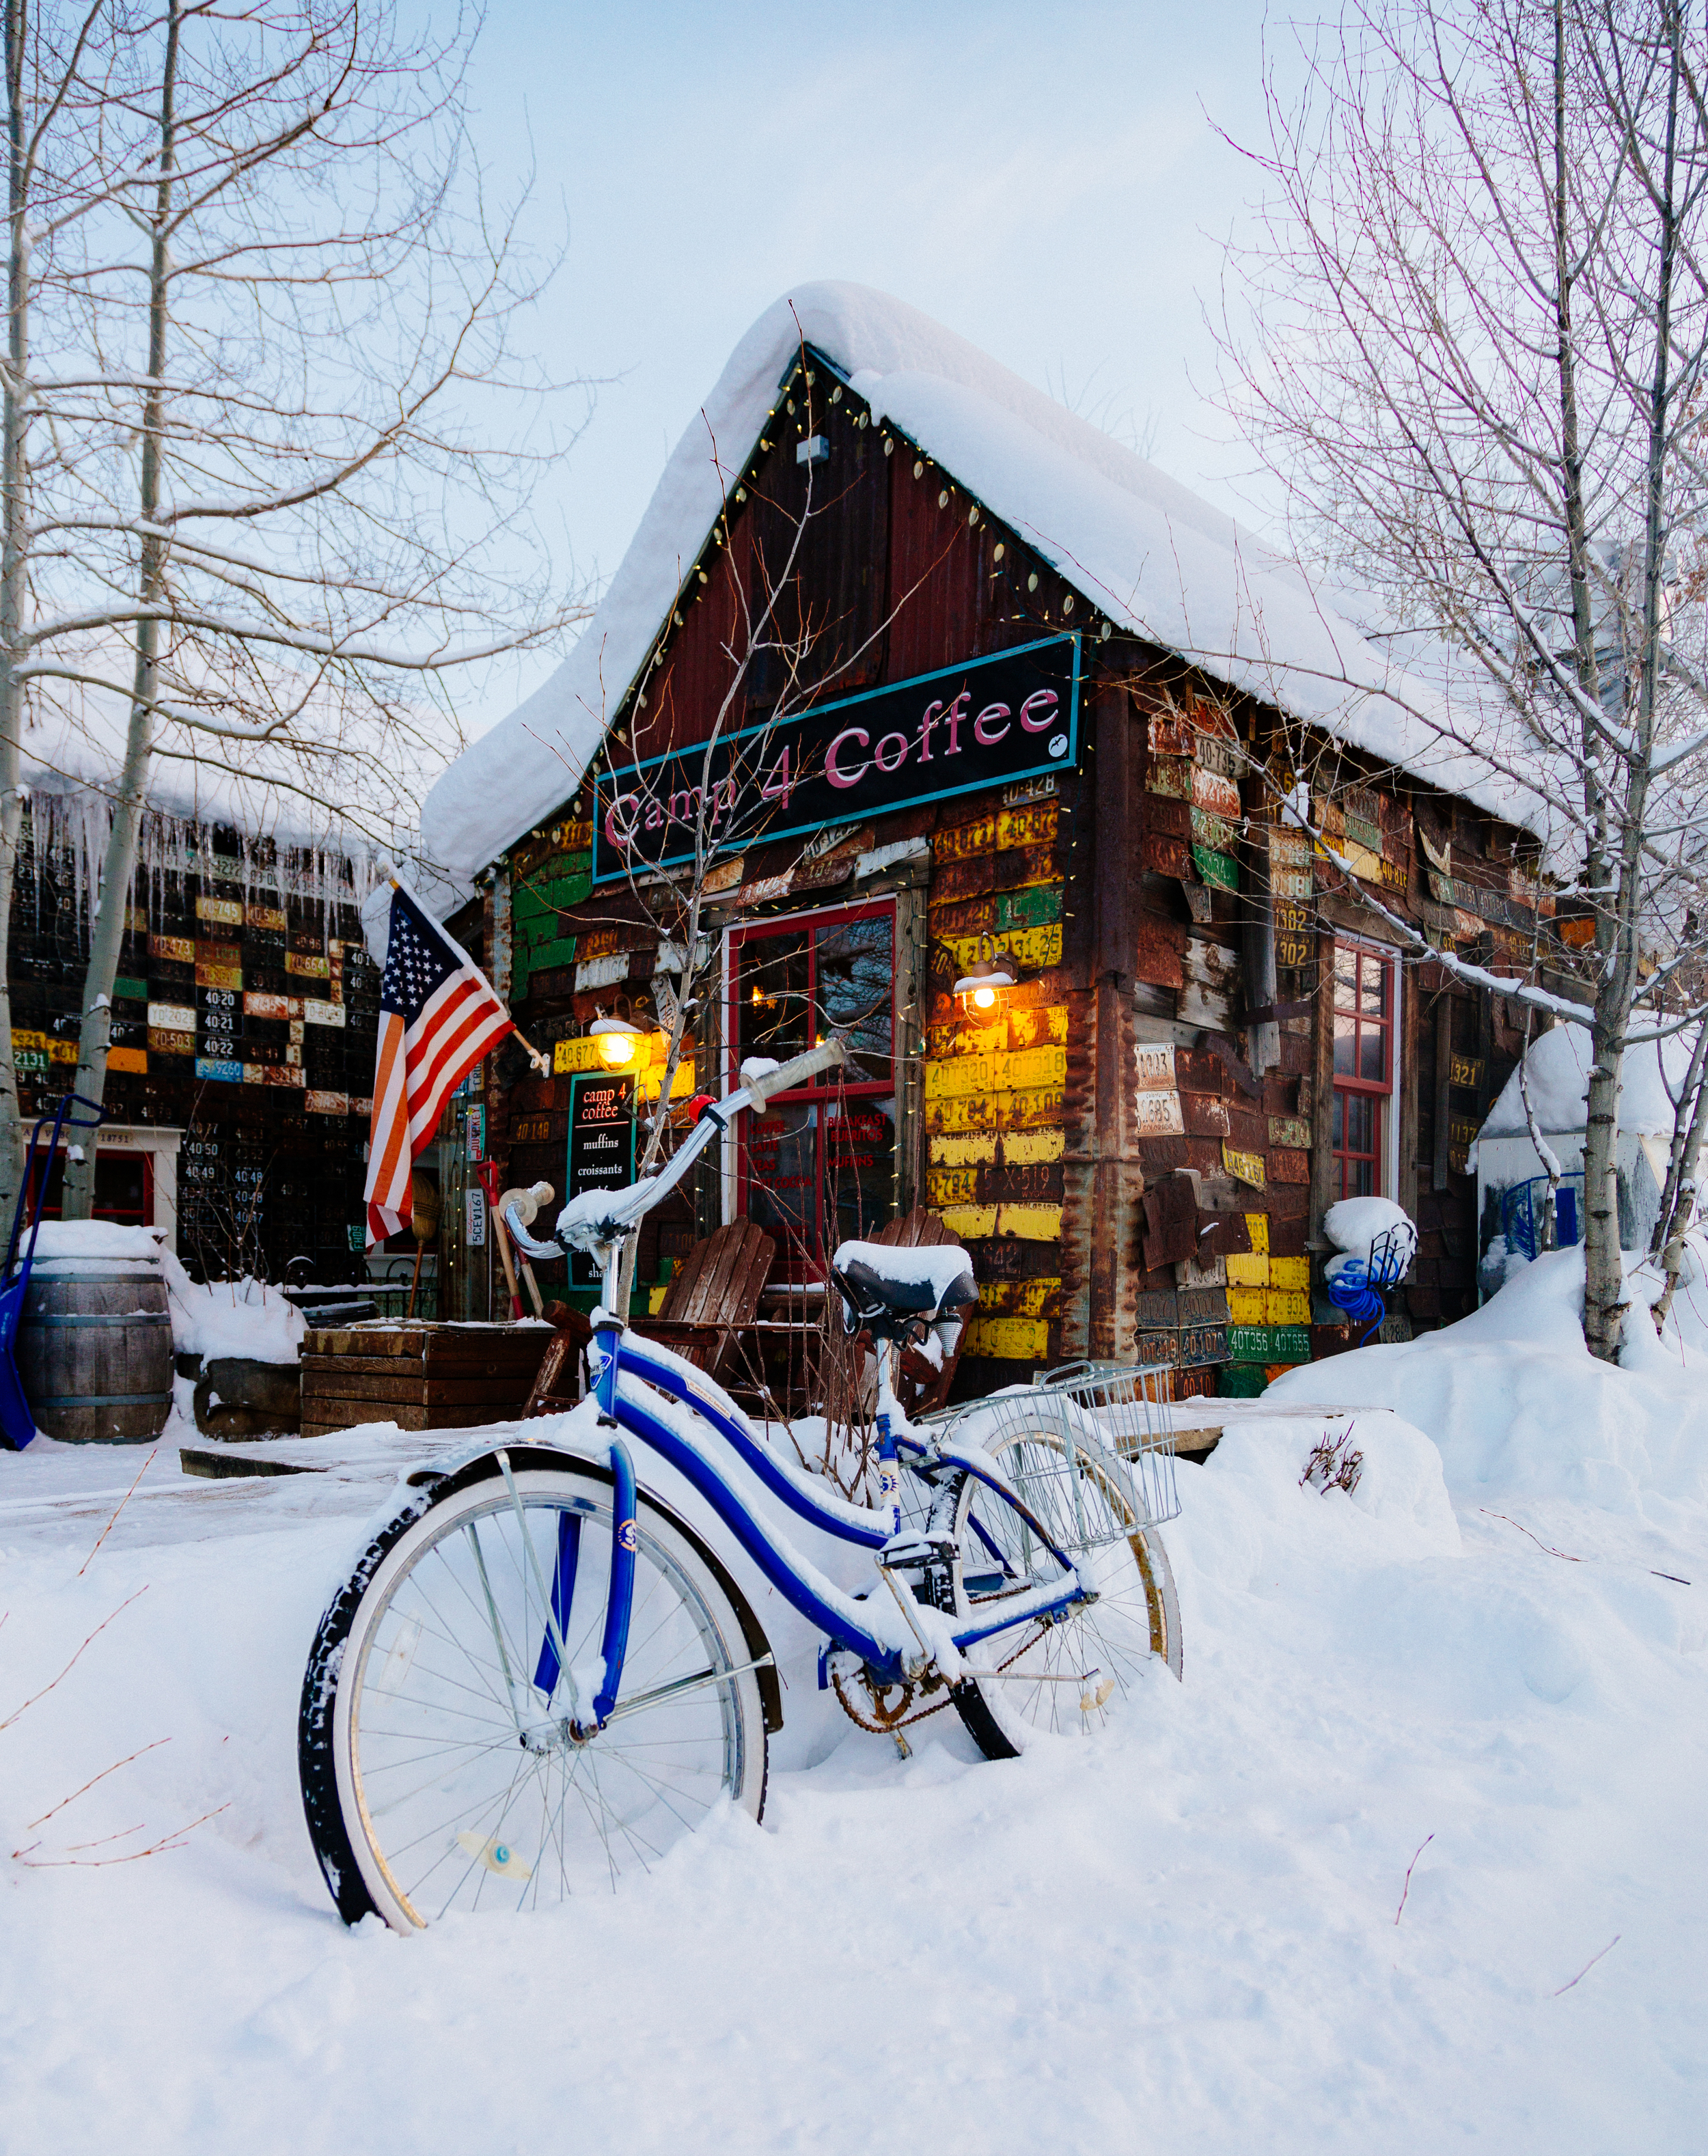 Camp 4 Coffee - A Crested Butte institution